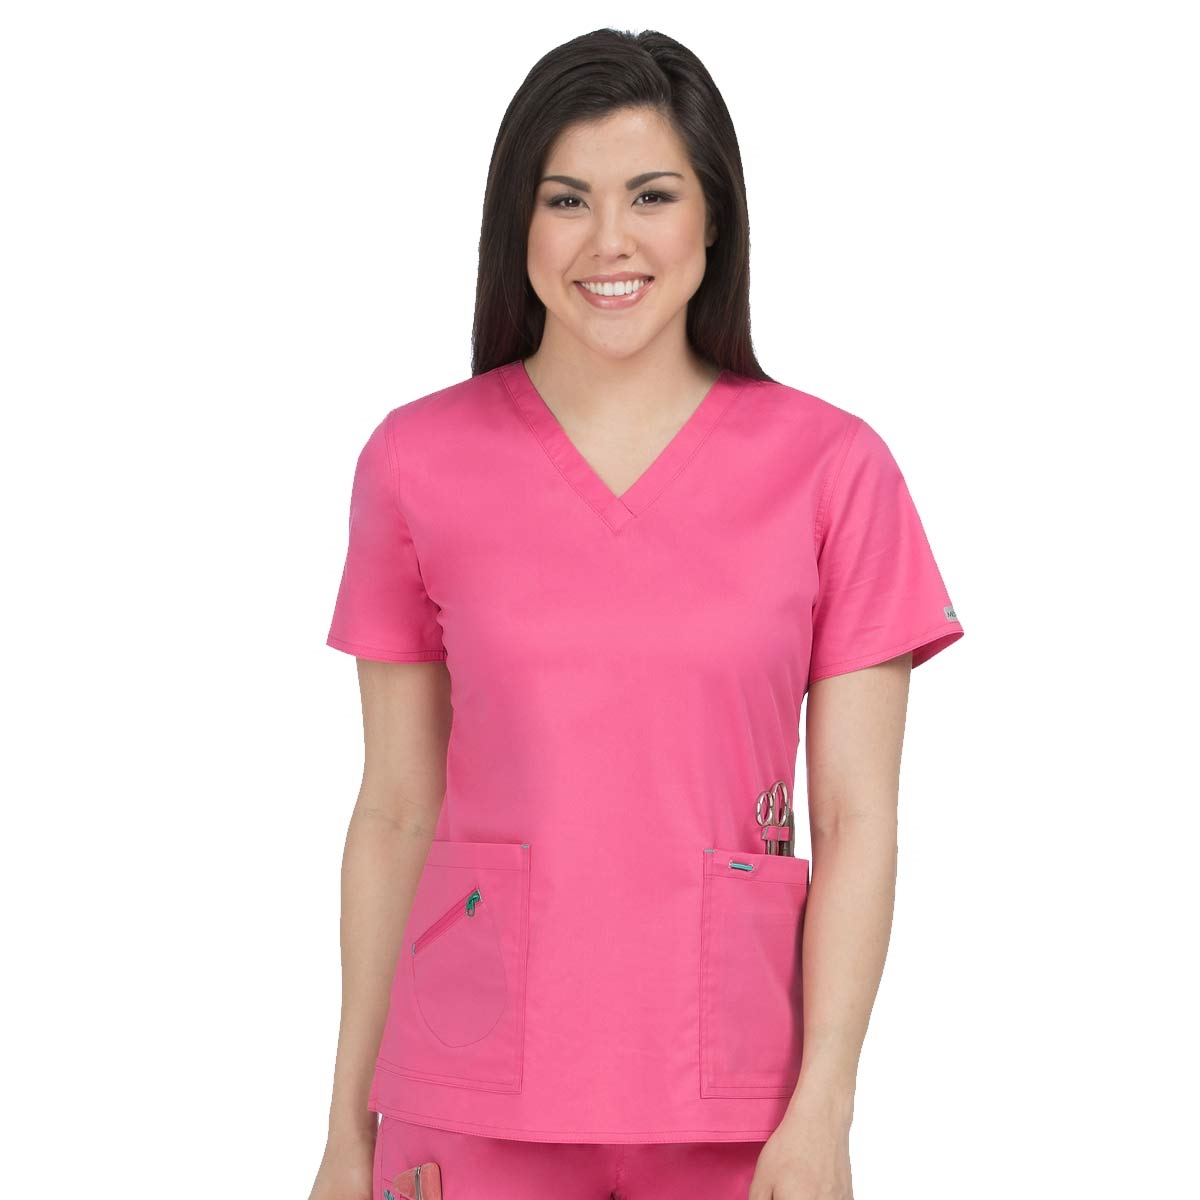 3db5e106ac0 Med Couture Mobility V-Neck Top - Great selection of color combinations